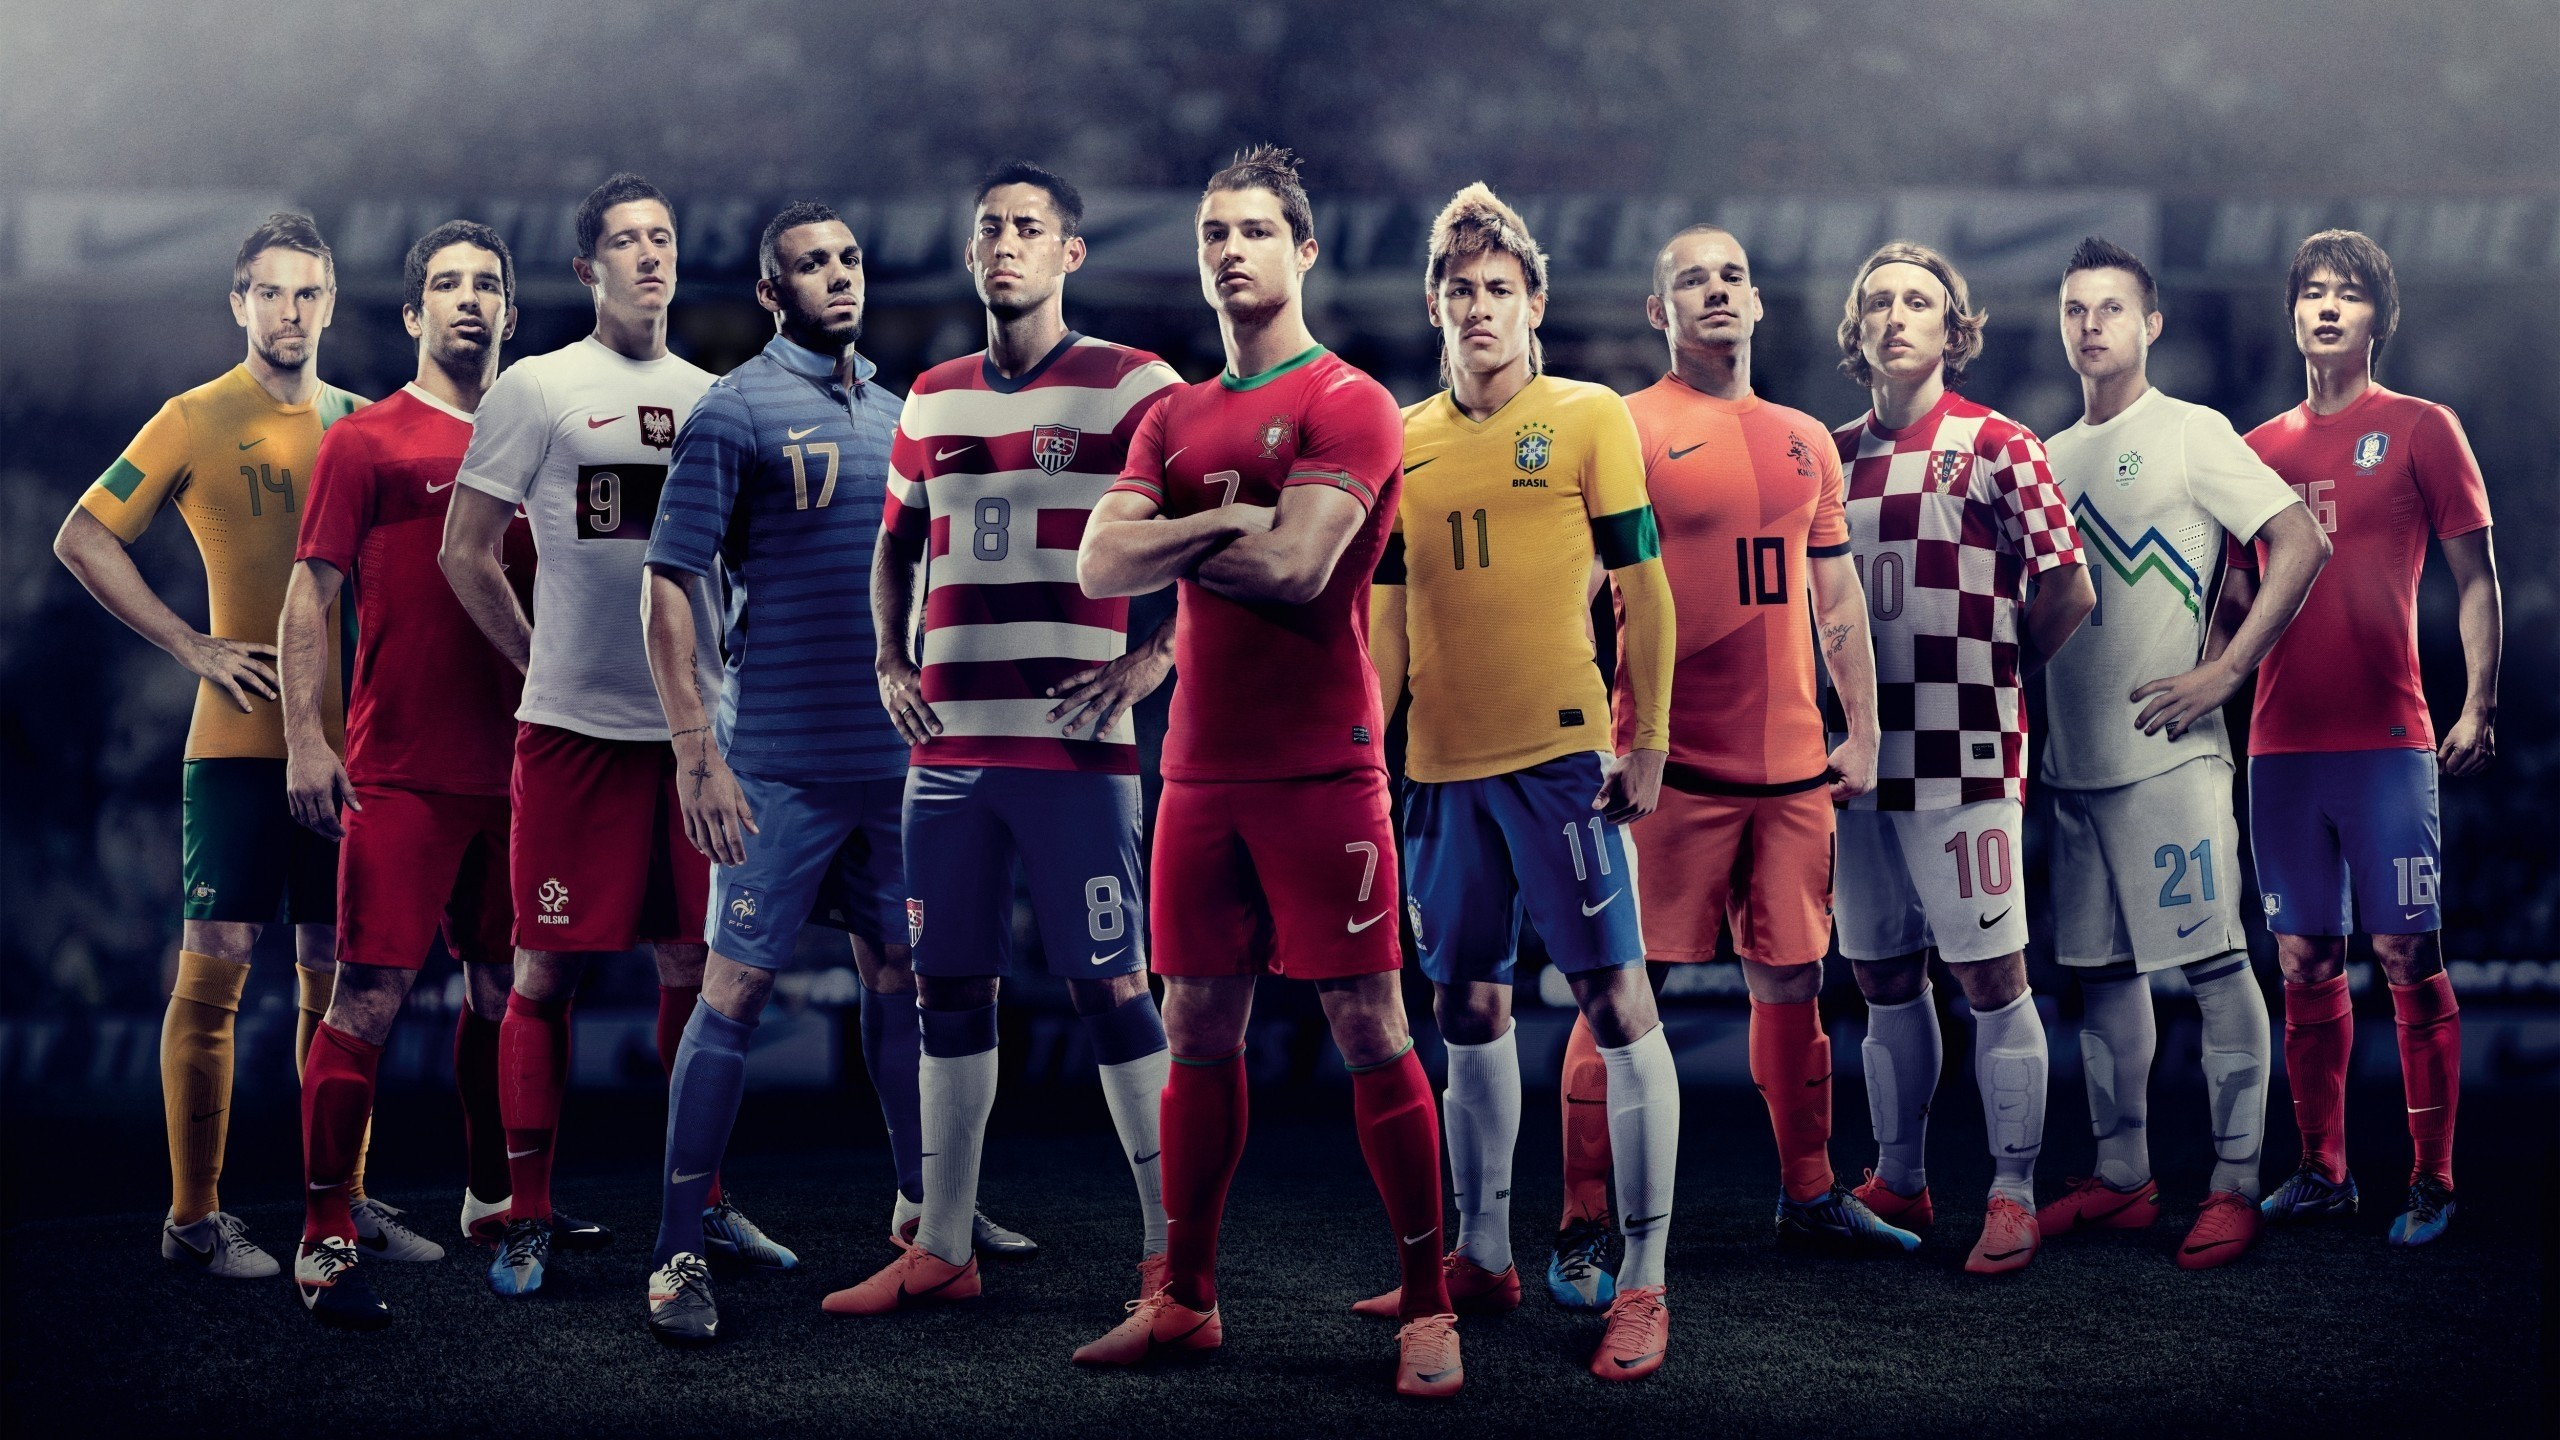 2560x1440 World Cup 2010 Football Team at 2560 x 1440 size